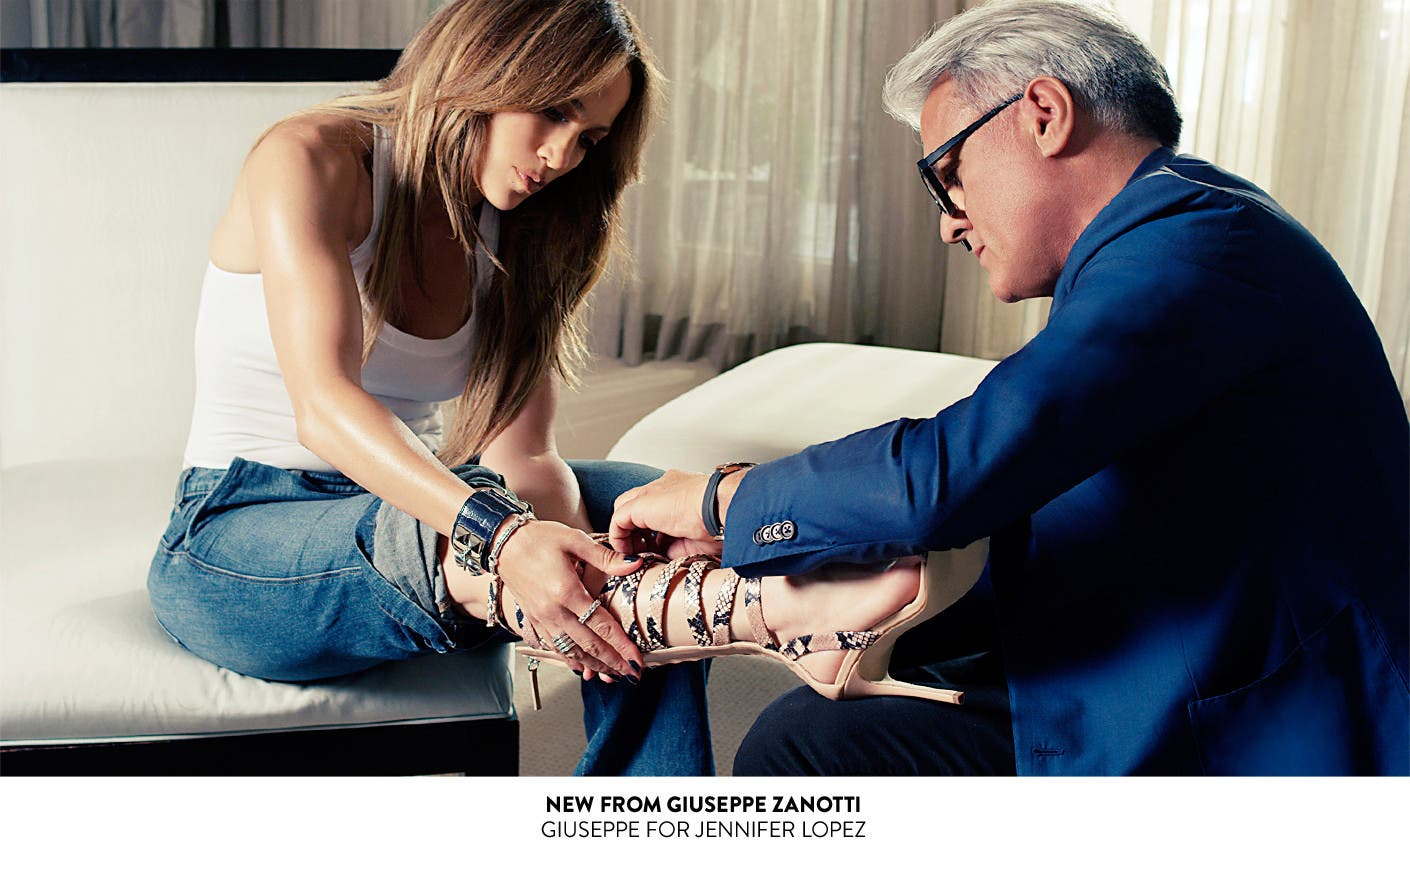 New designer shoes from Giuseppe Zanotti: Giuseppe for Jennifer Lopez capsule collection.